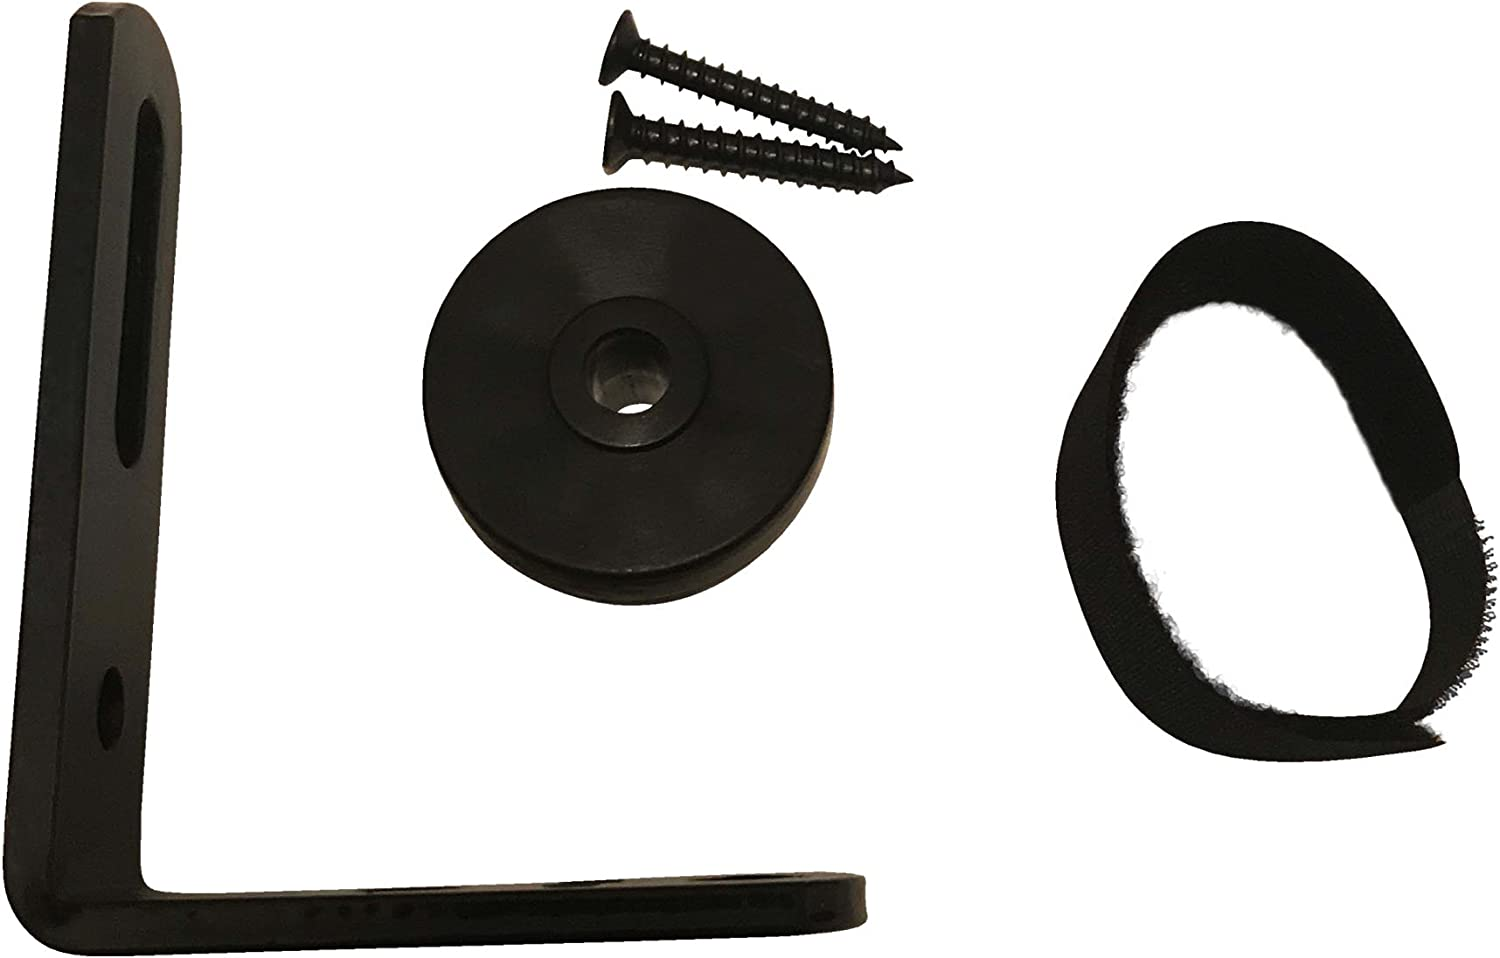 Black Stay Roller Indianapolis Mall Floor Guide For Adjustable Door Sliding New product! New type Barn